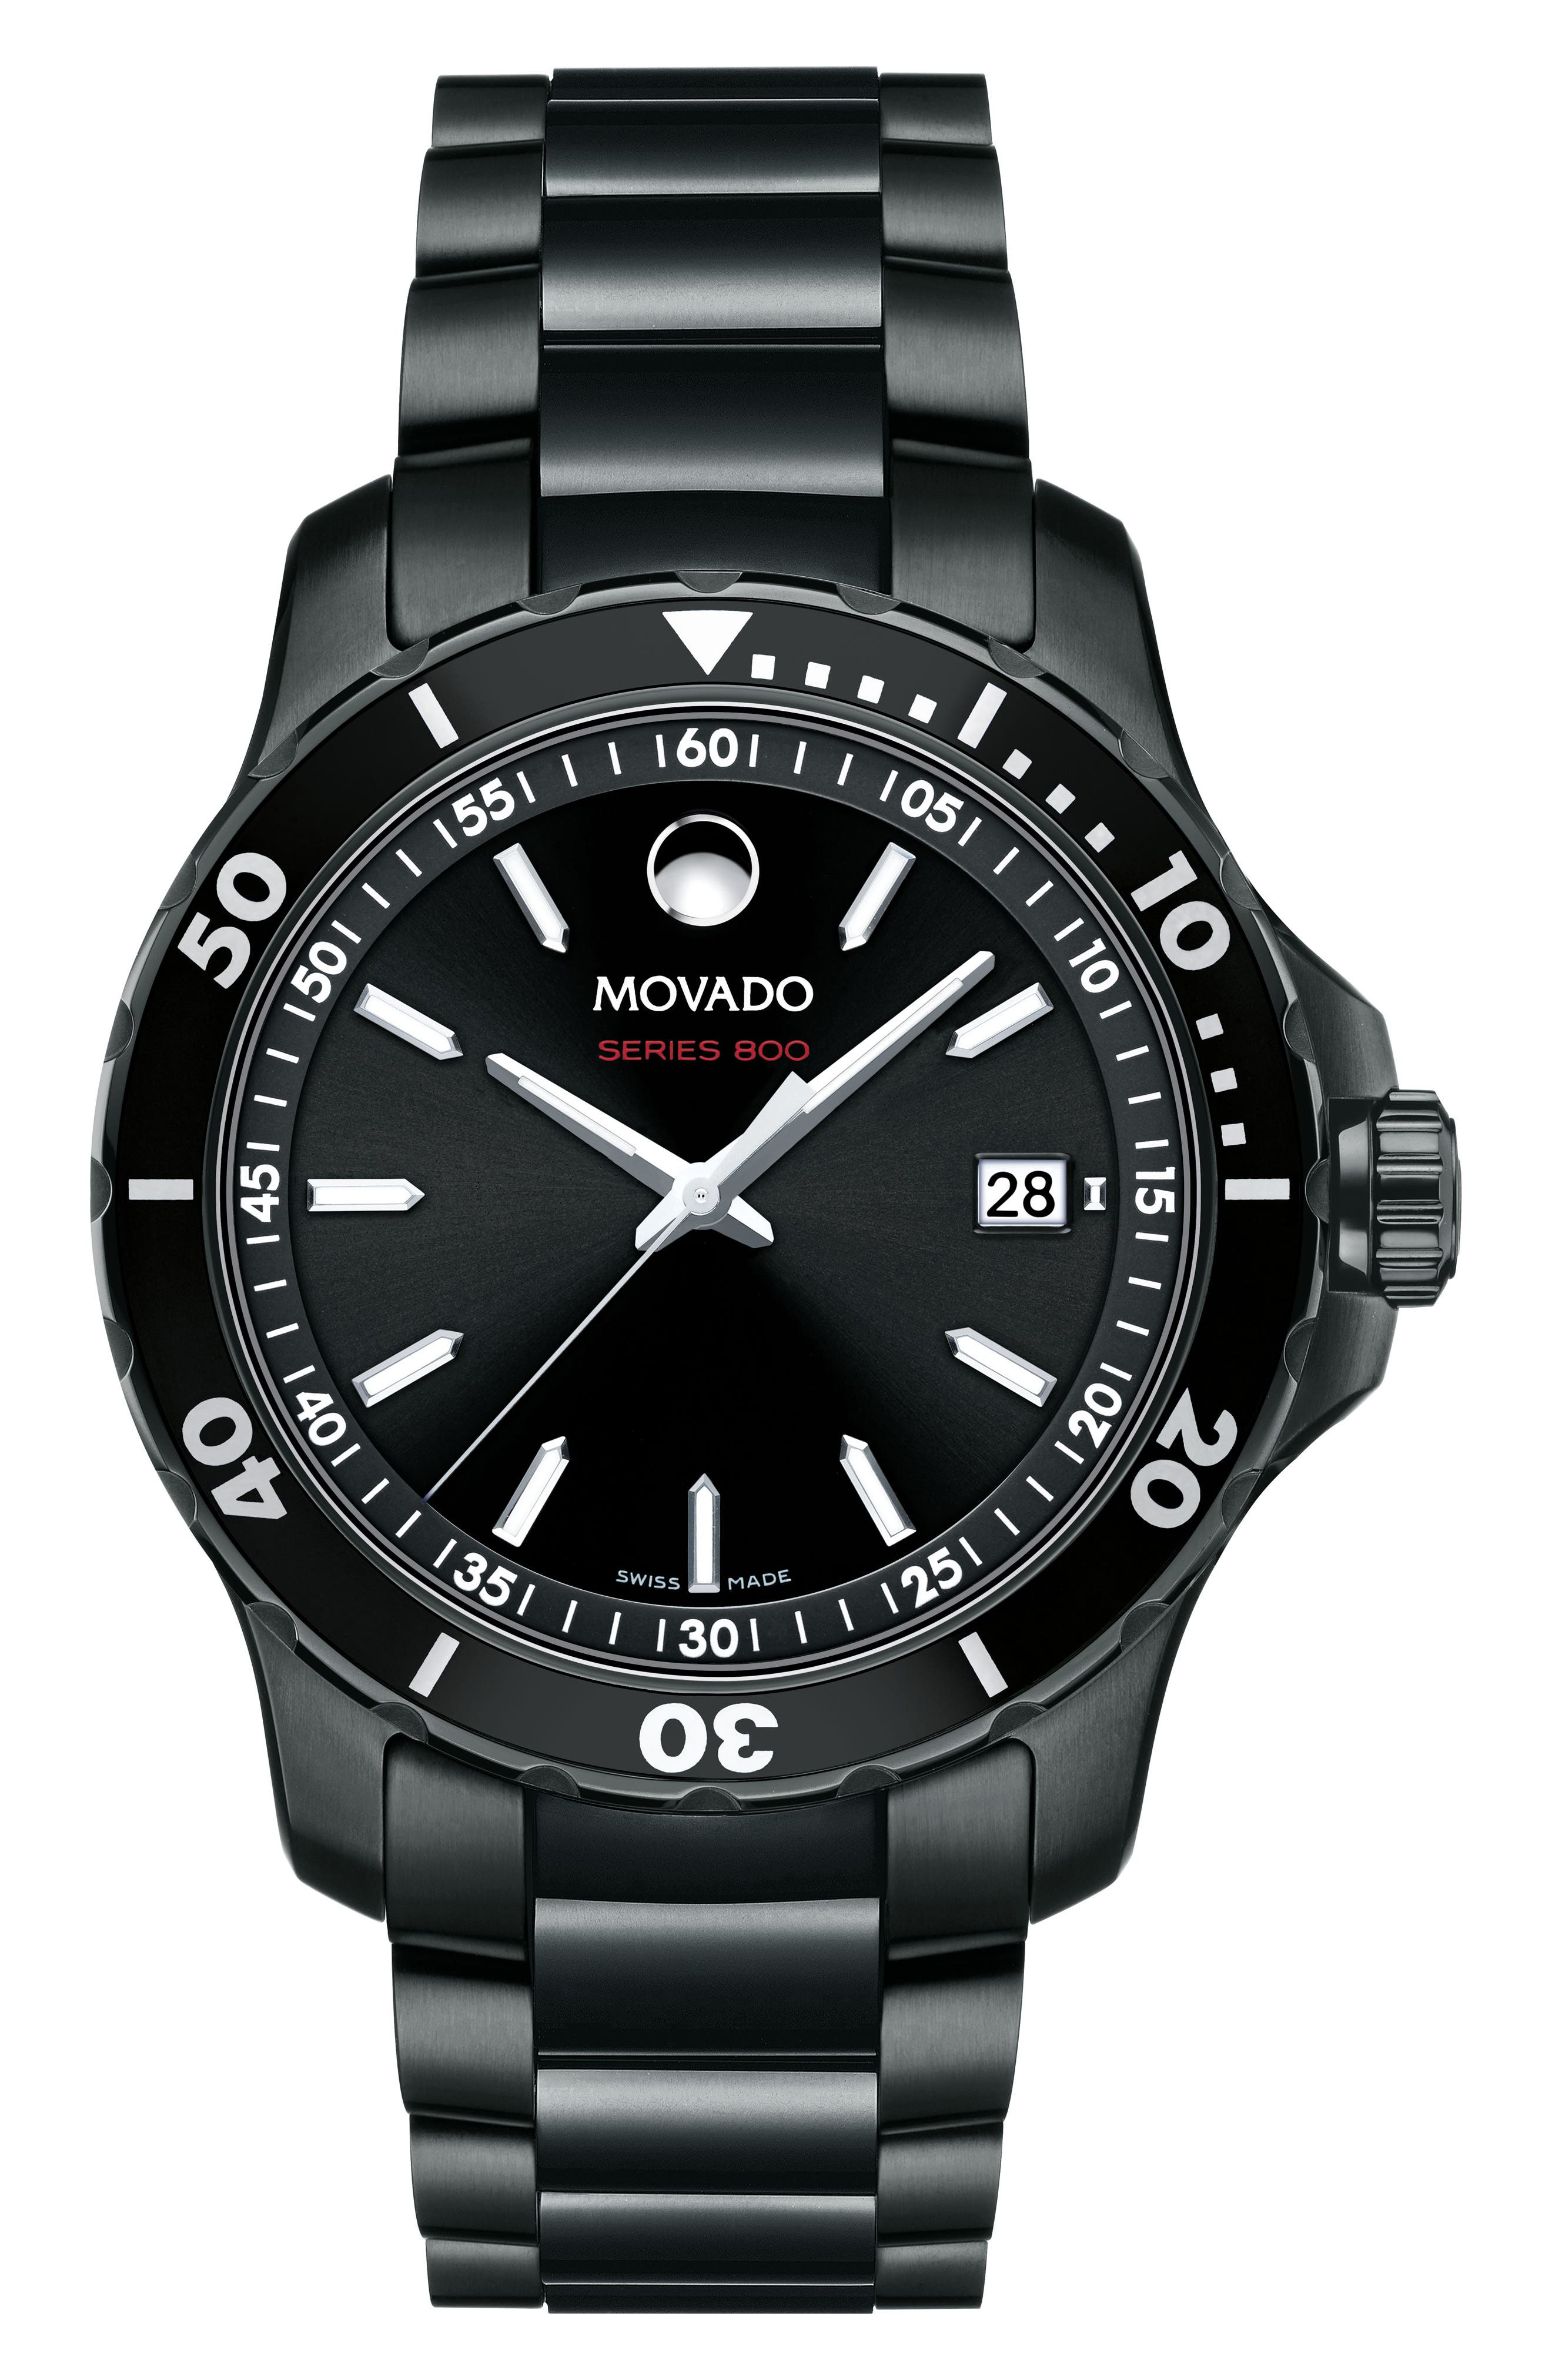 Alternate Image 1 Selected - Movado Series 800 Bracelet Watch, 40mm